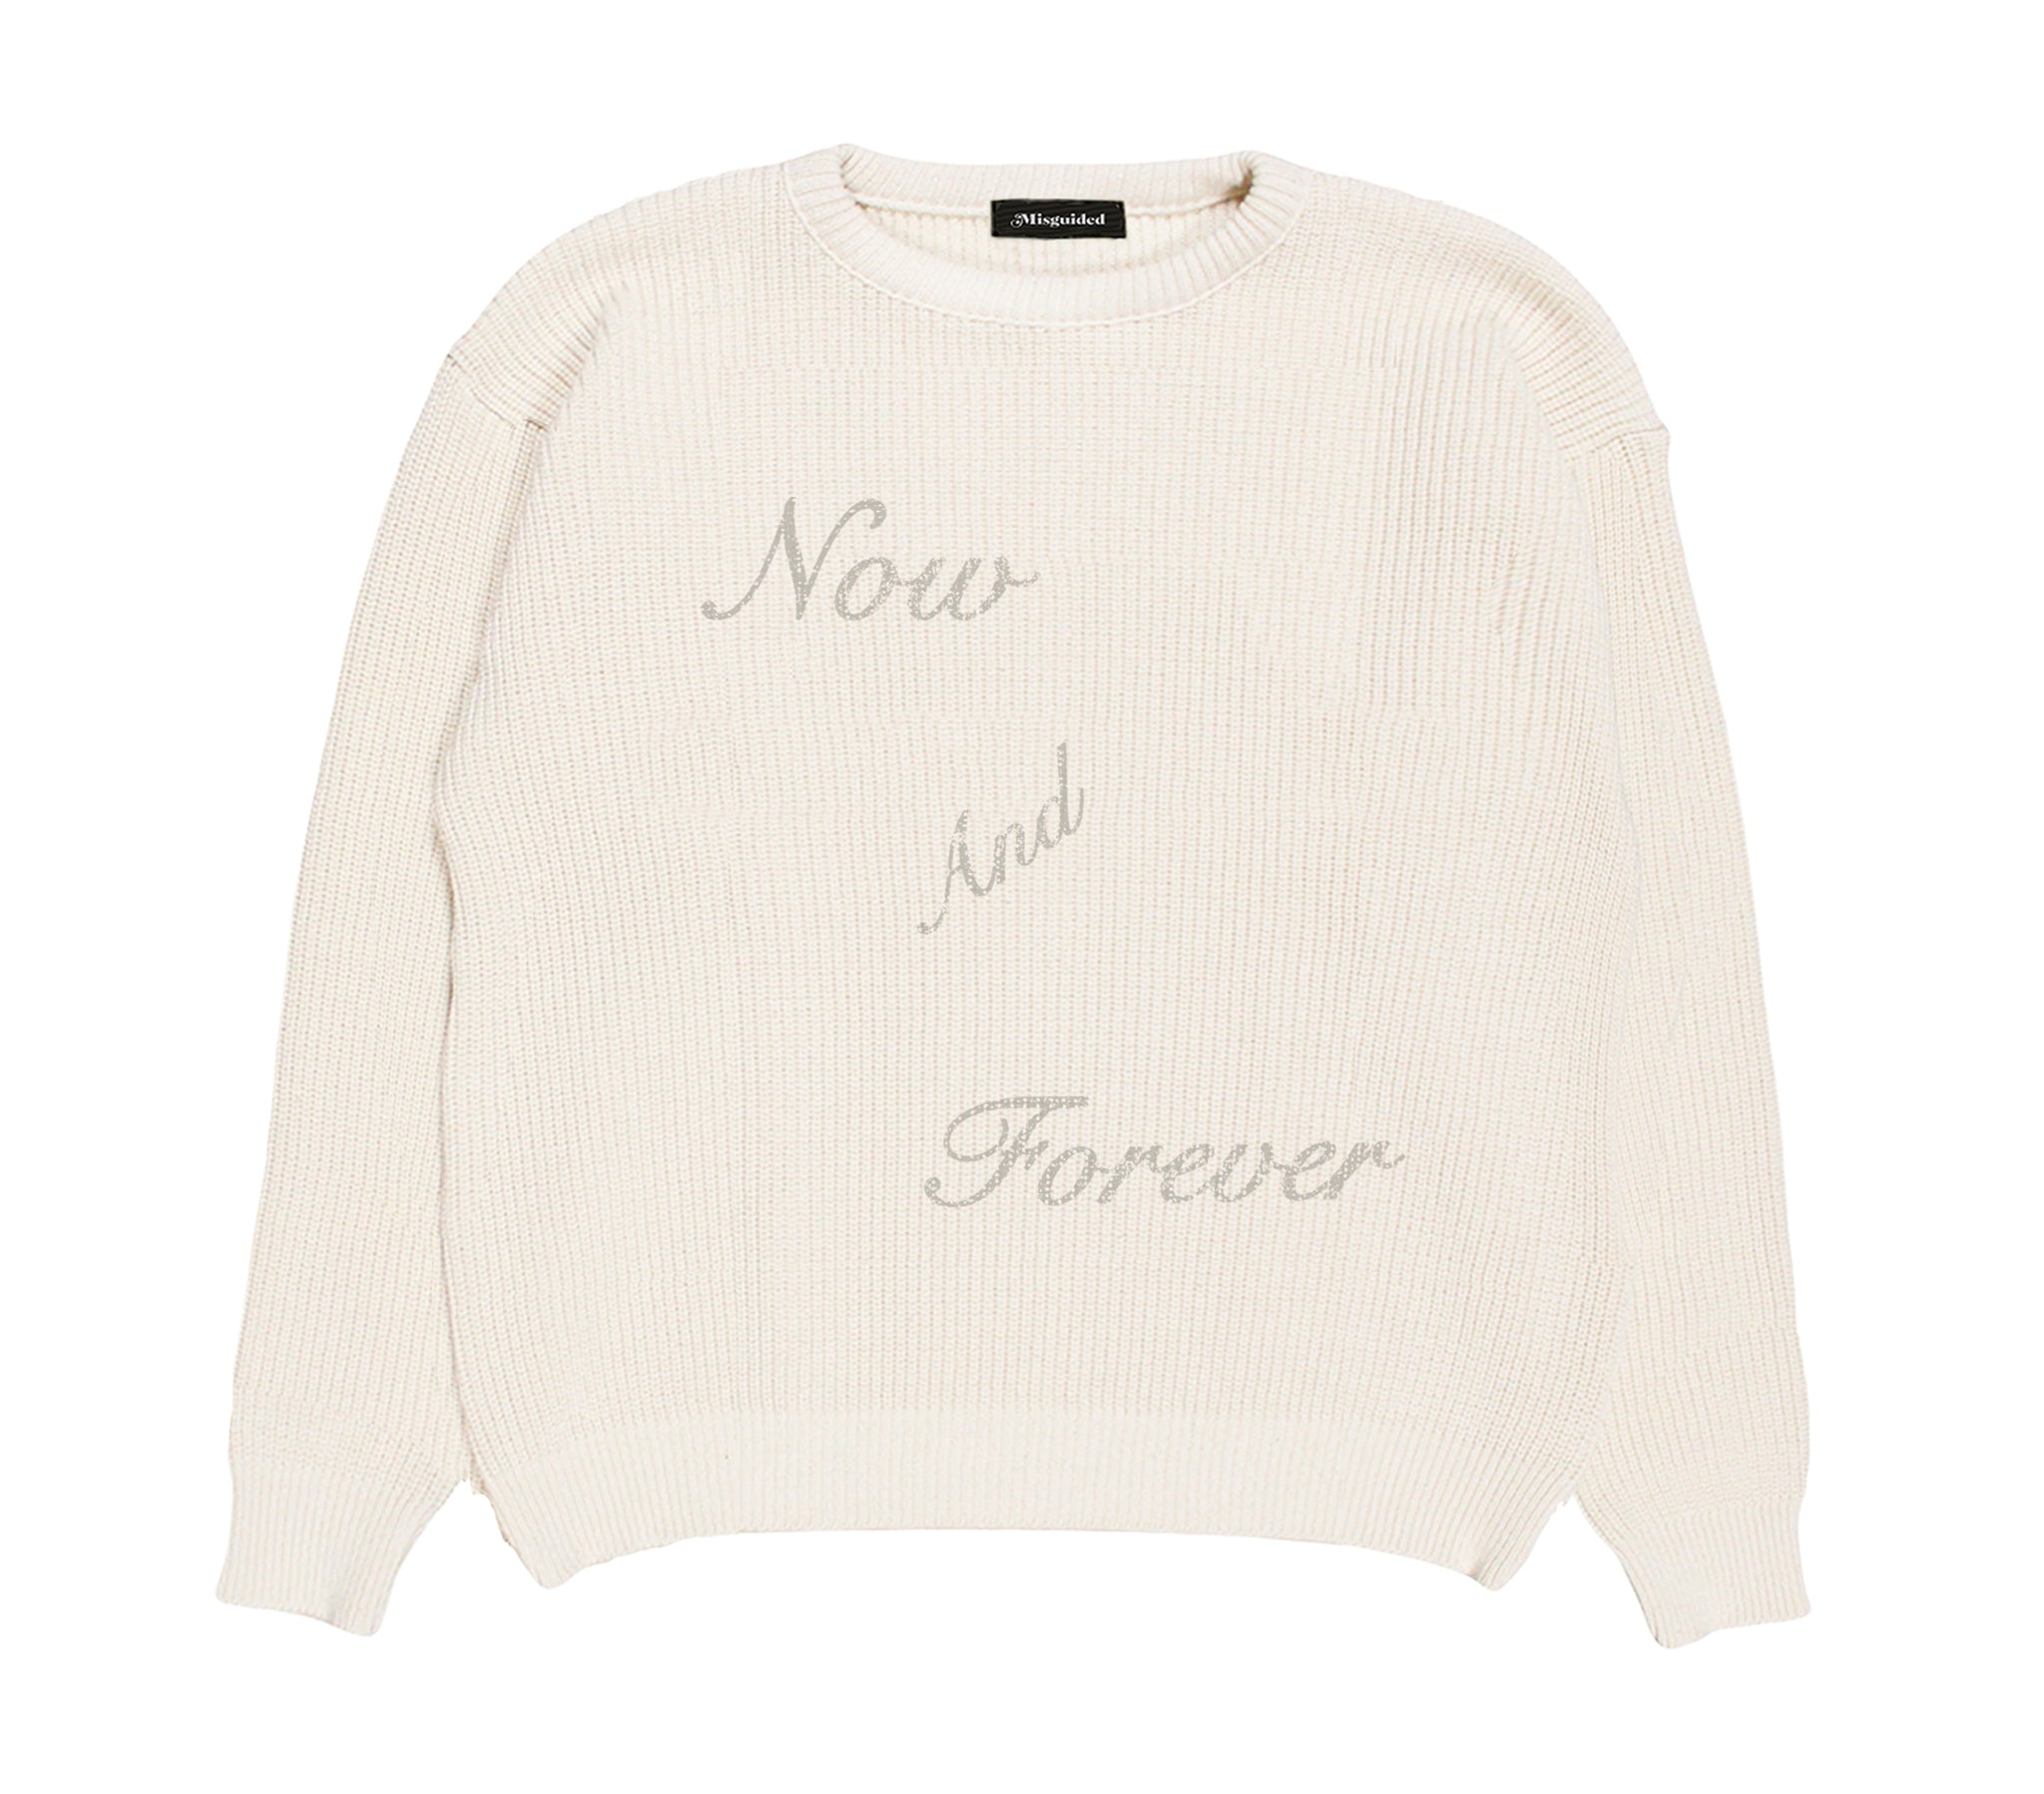 Now and Forever Sweater (Cream)